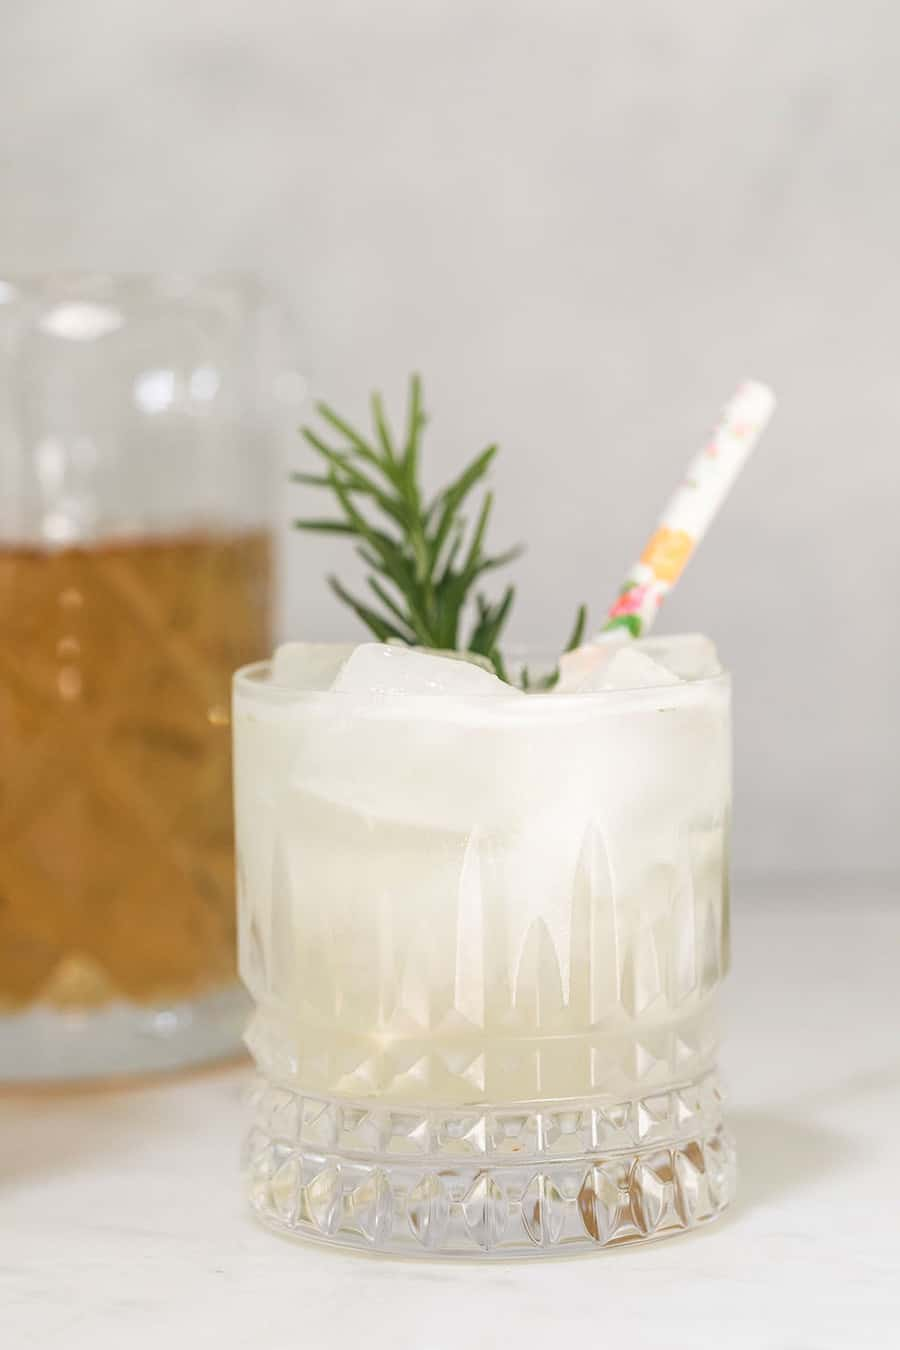 Mocktail recipe with rosemary and a straw